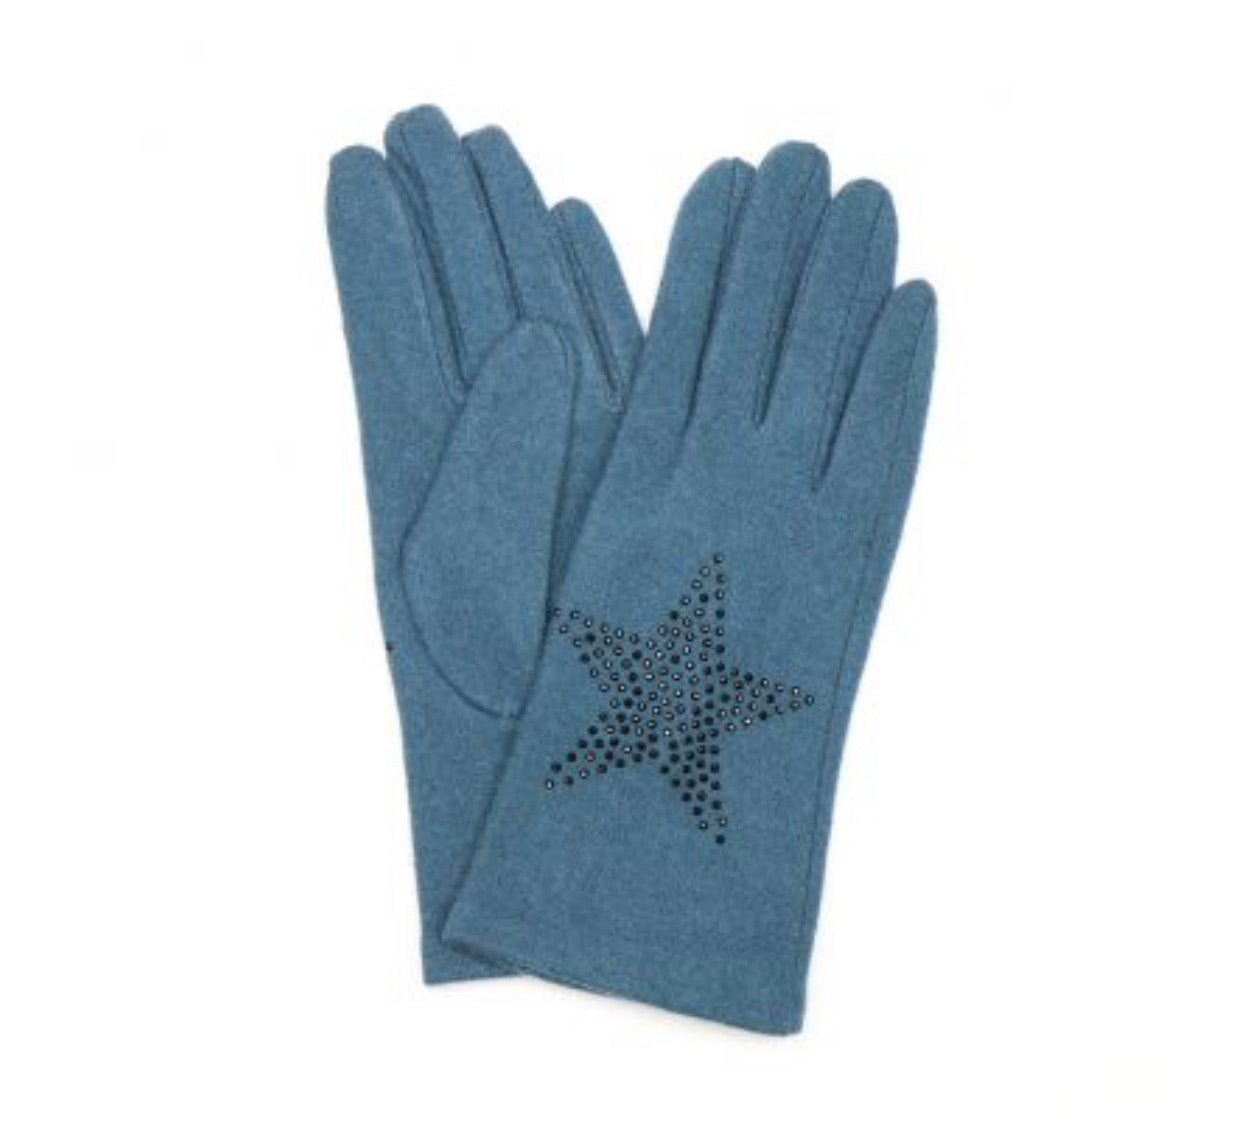 Teal winter gloves with star